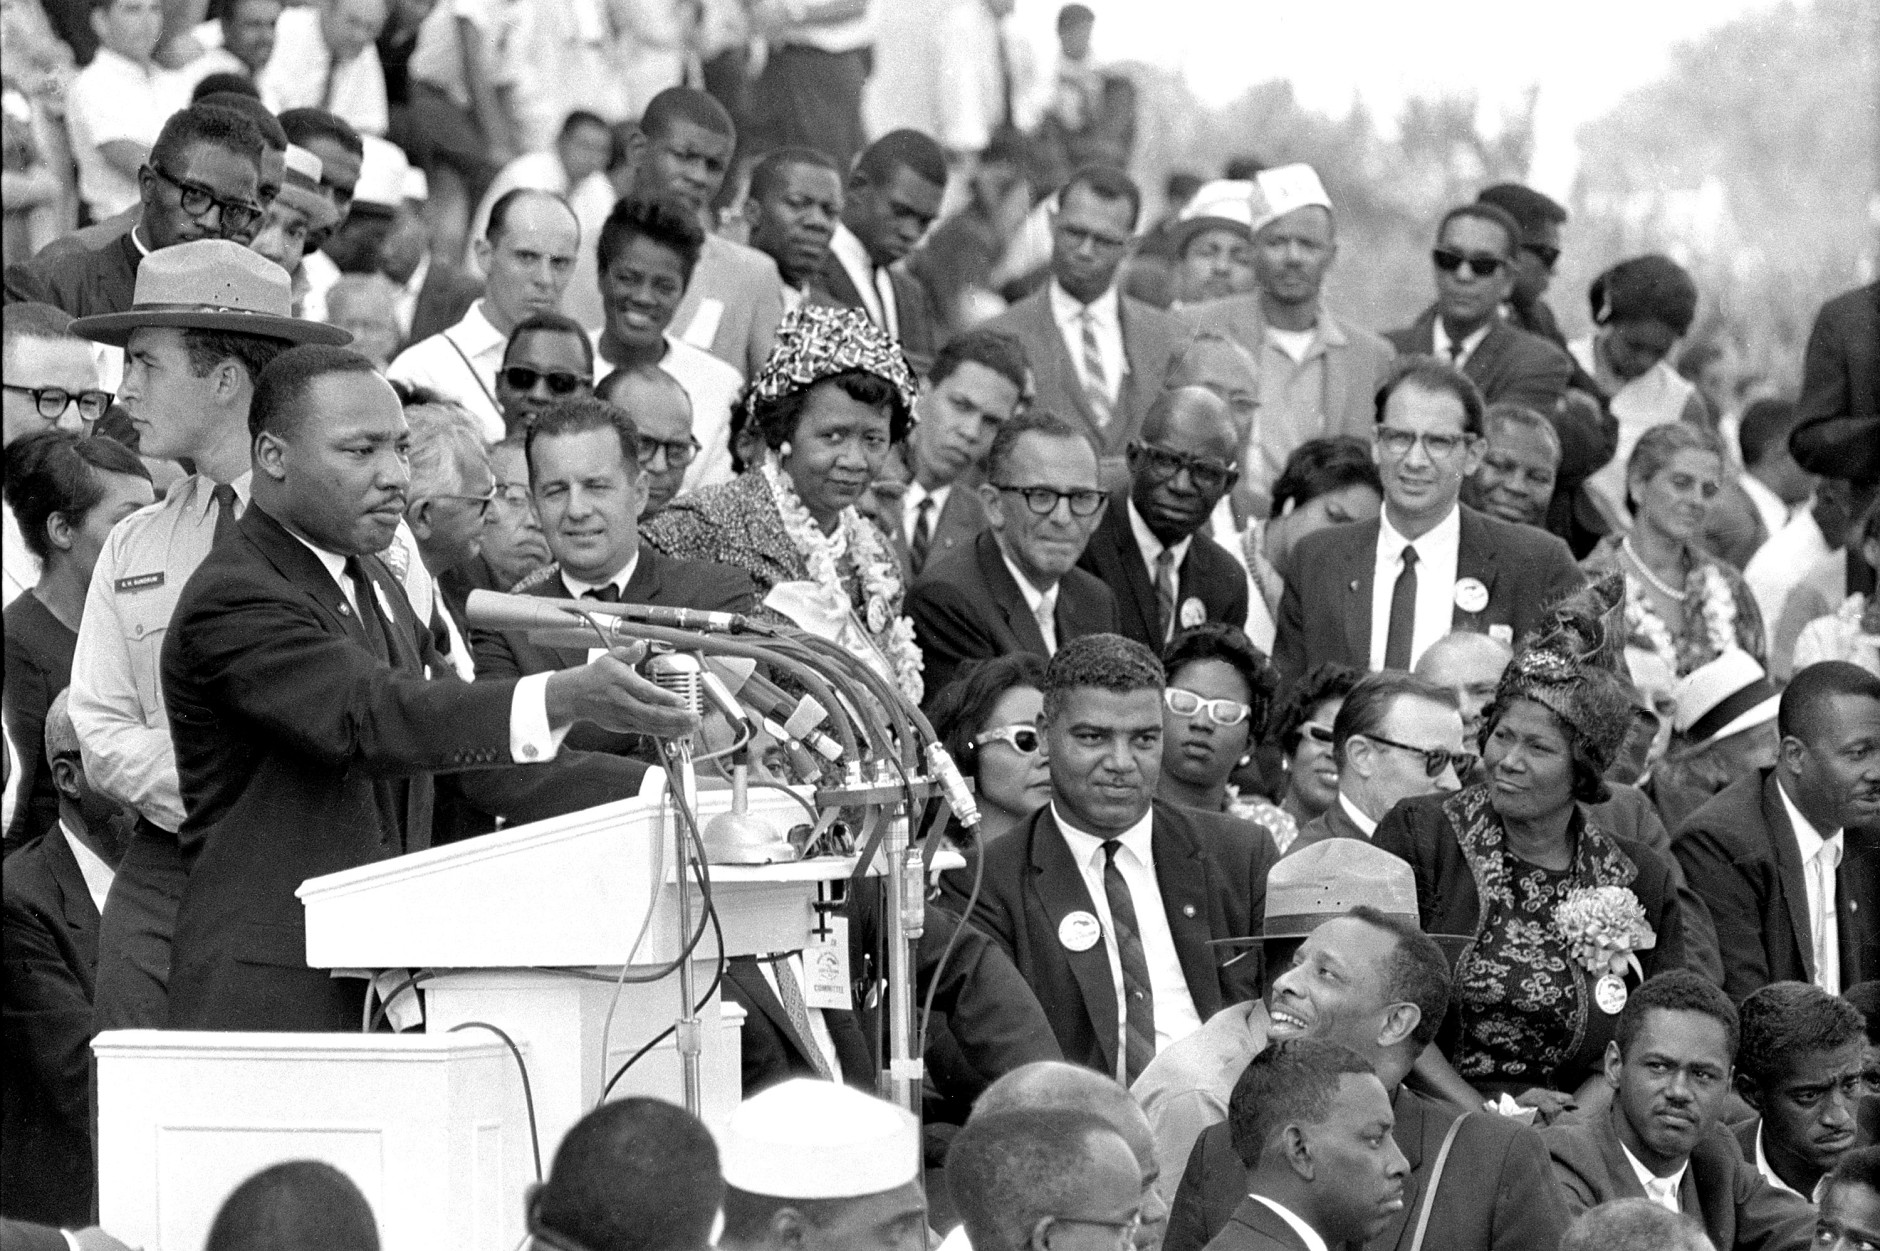 """On this date in 1963, more than 200,000 people listened as the Rev. Martin Luther King Jr. delivered his """"I Have a Dream"""" speech in front of the Lincoln Memorial in Washington D.C. (AP Photo/File)"""